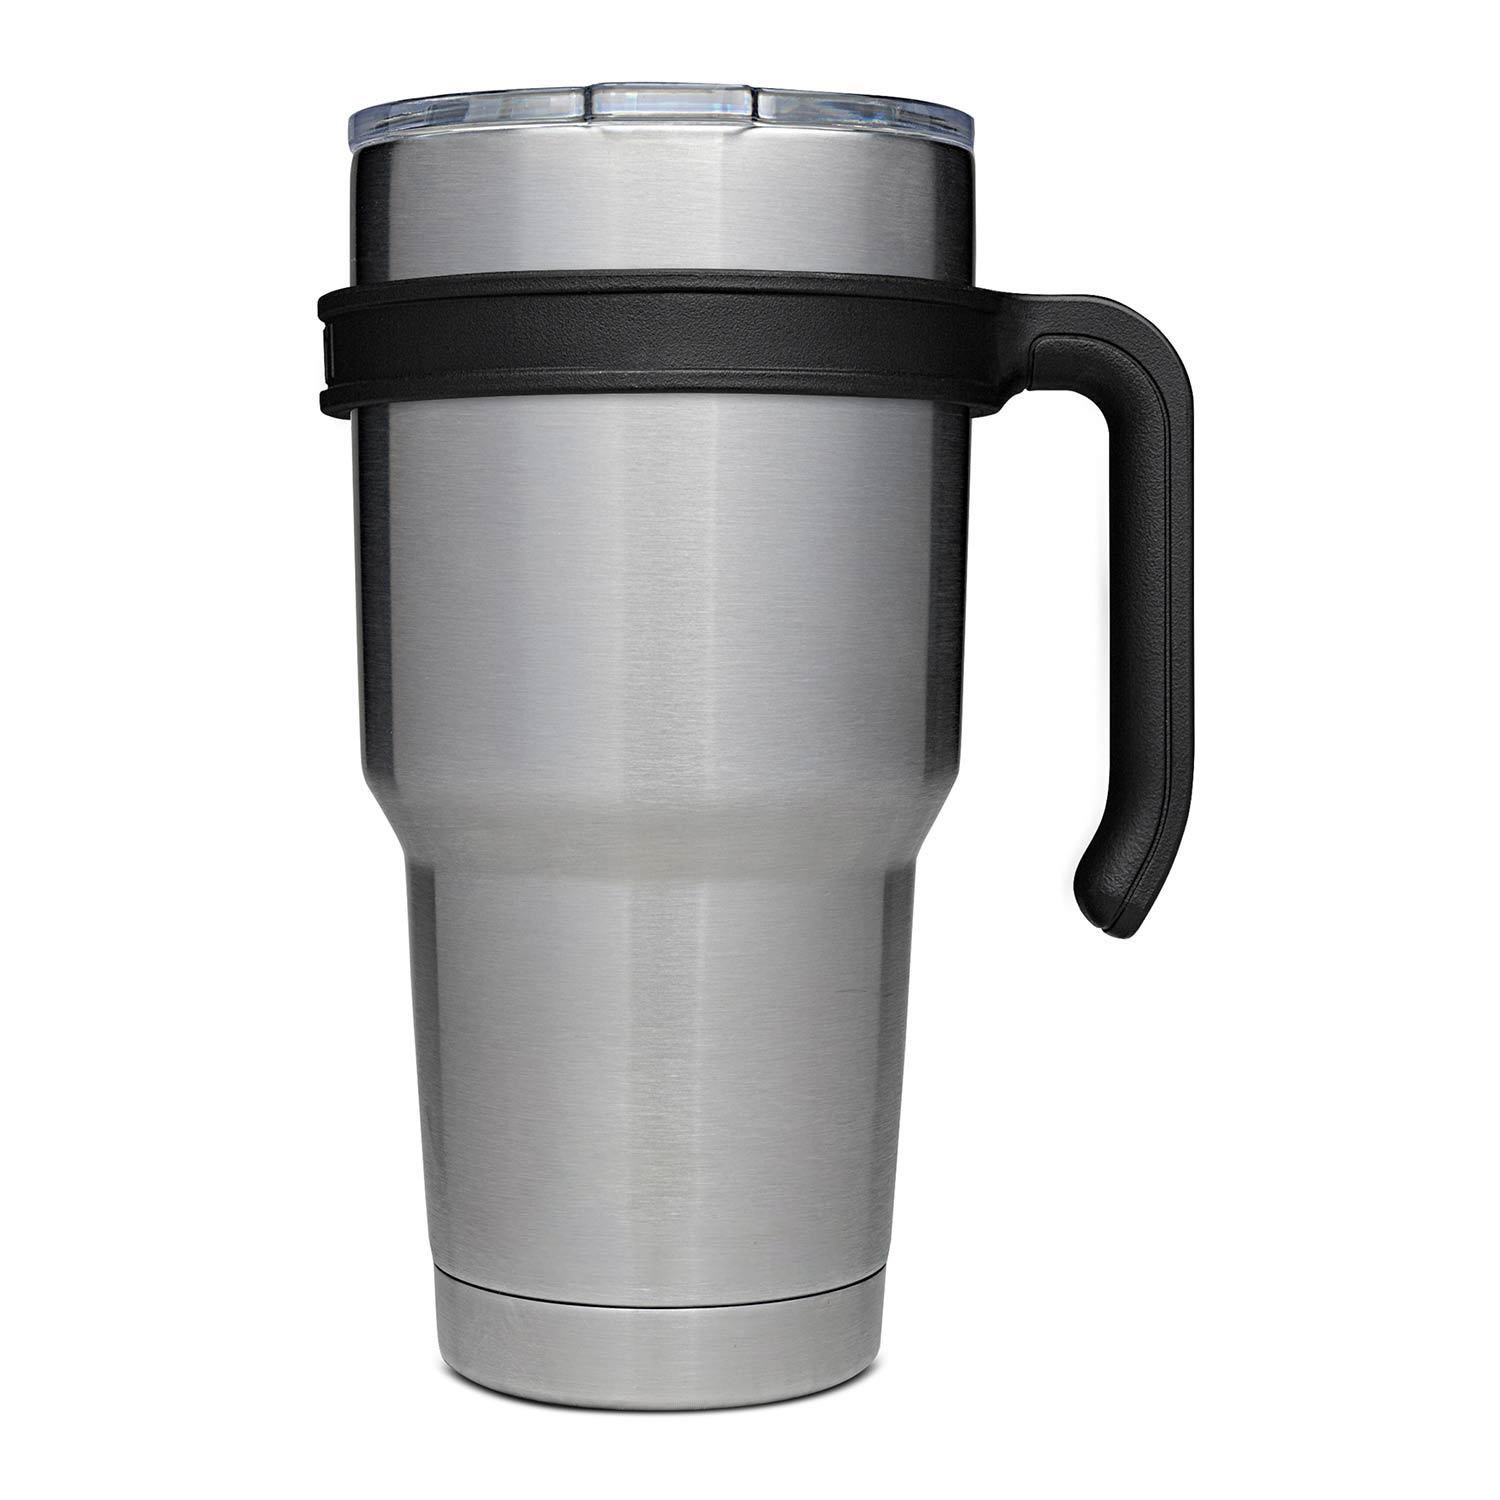 FAMOUS BRAND 30-Ounce Double Walled Stainless Steel Vacuum Tumbler WITH LID - WORKS EXACTLY LIKE A YETI (But it's not that brand)! Keeps beverages cold for up to 48 hours! - We had to agree to keep the brand name a secret due to our price, but these work GREAT! You're getting such an amazing deal because they will have assorted logos / licenses on them (Nasa, Star Wars, Marvel, etc) - Choose with or without handle - $1.49 shipping, but order 2 or more and SHIPPING IS FREE & IMMEDIATE! (IF YOU ARE LOOKING FOR THE KN95 MASKS THAT WE RECENTLY OFFERED, CLICK HERE.